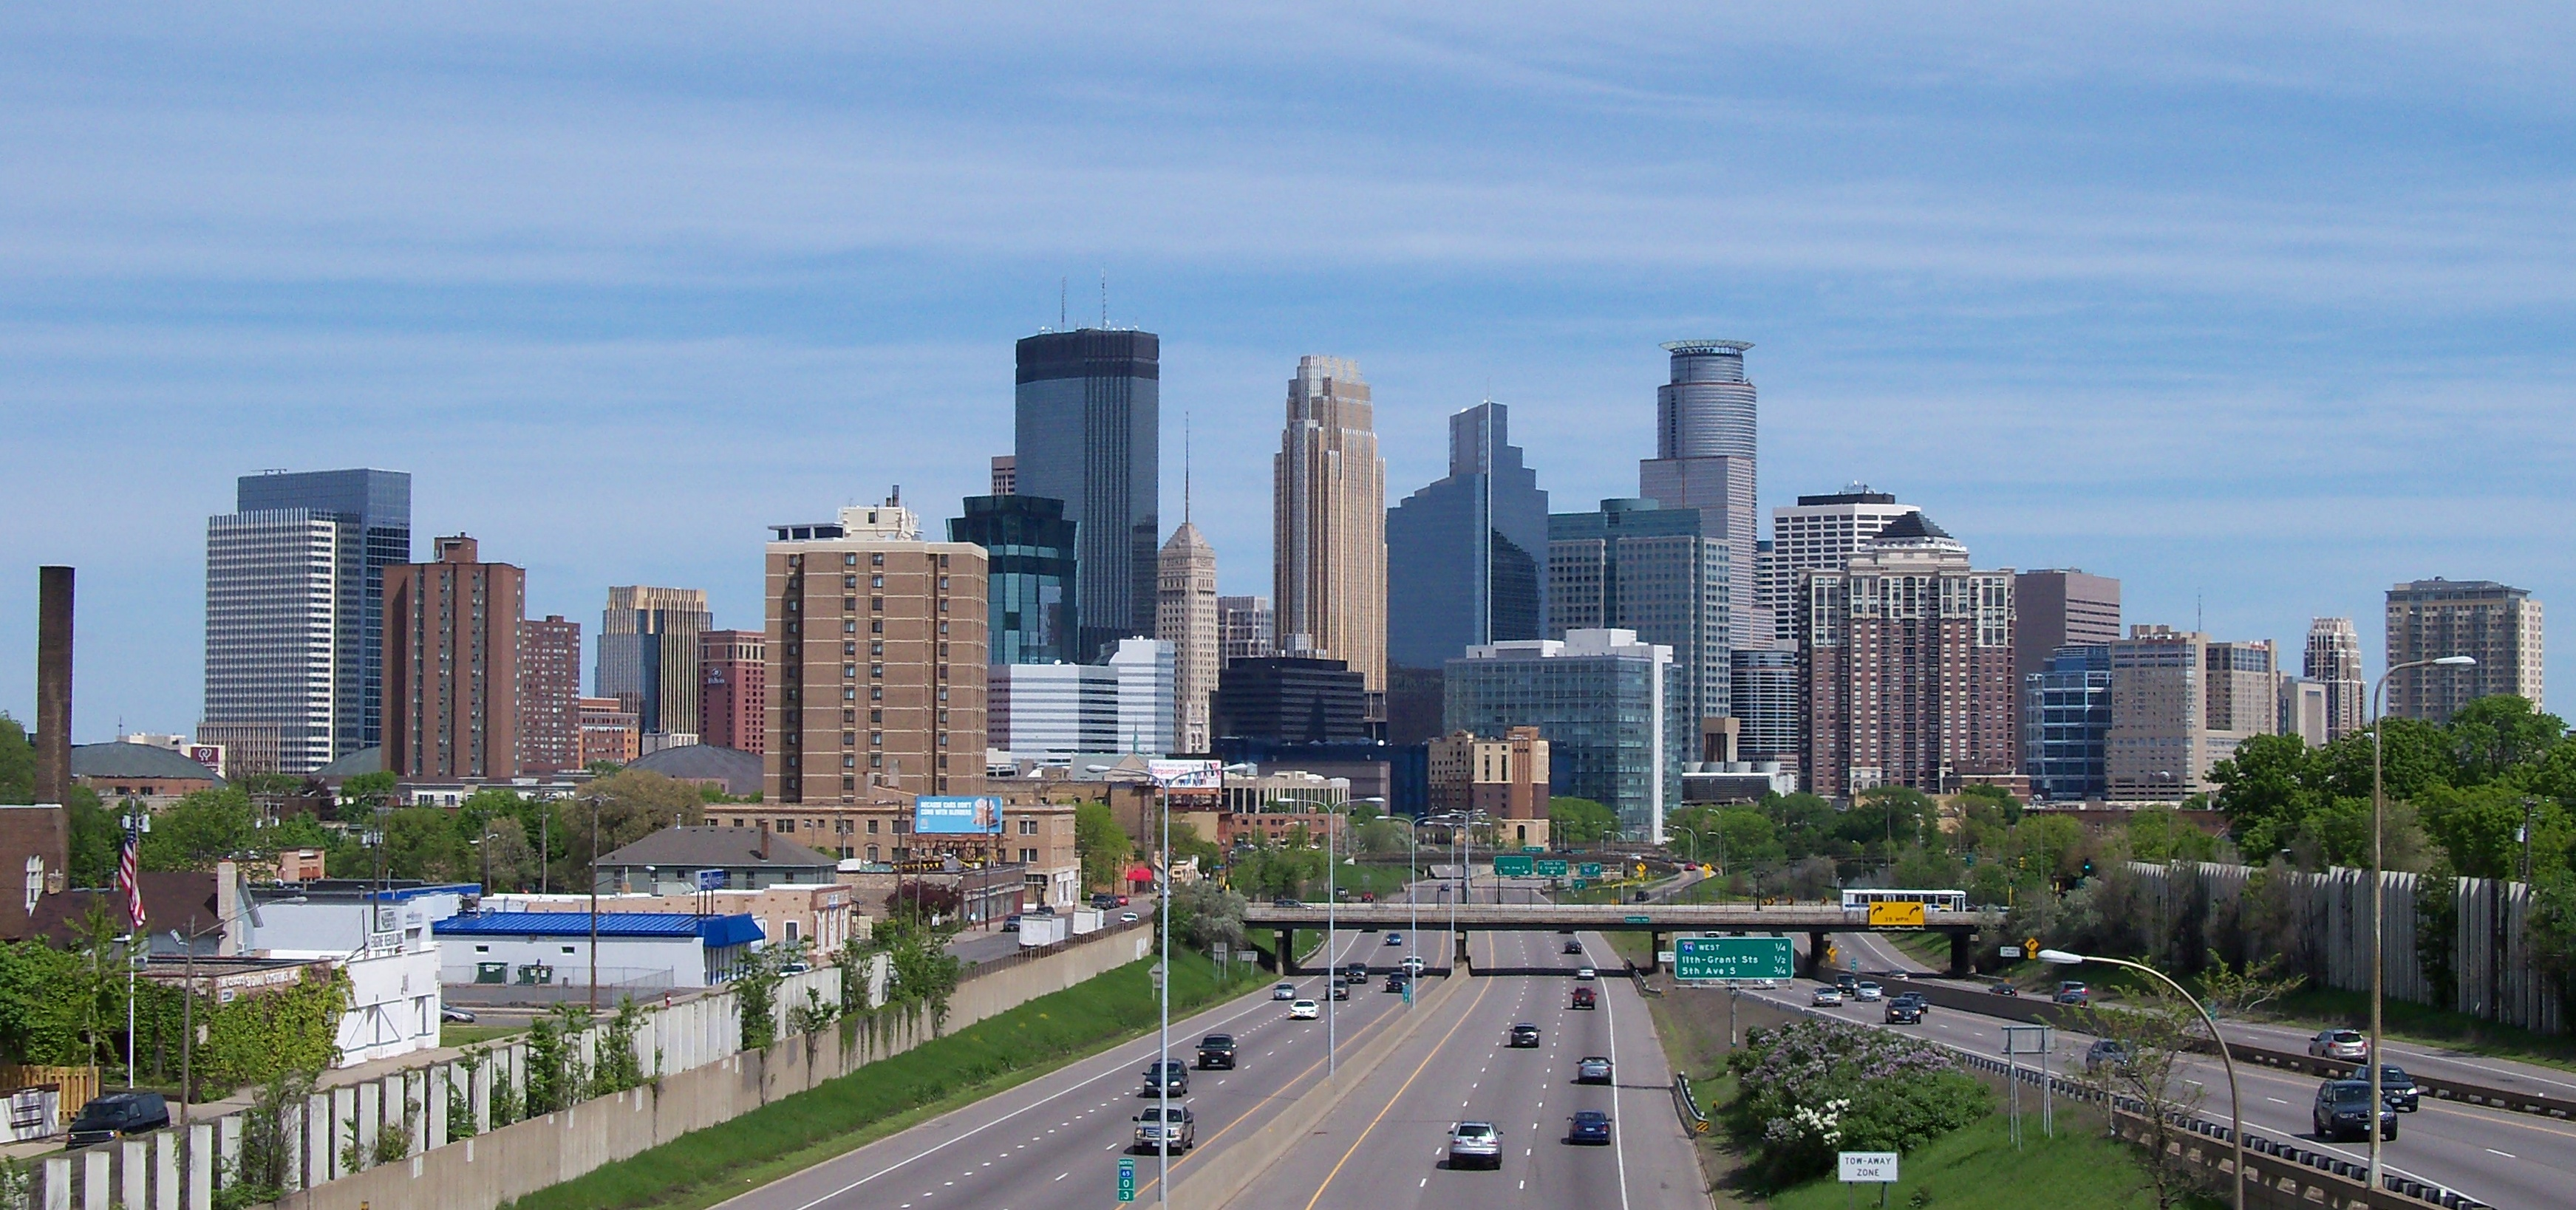 Minneapolis skyline 151 - By AlexiusHoratius (Own work) [CC BY-SA 3.0 (https://creativecommons.org/licenses/by-sa/3.0) or GFDL (http://www.gnu.org/copyleft/fdl.html)], via Wikimedia Commons